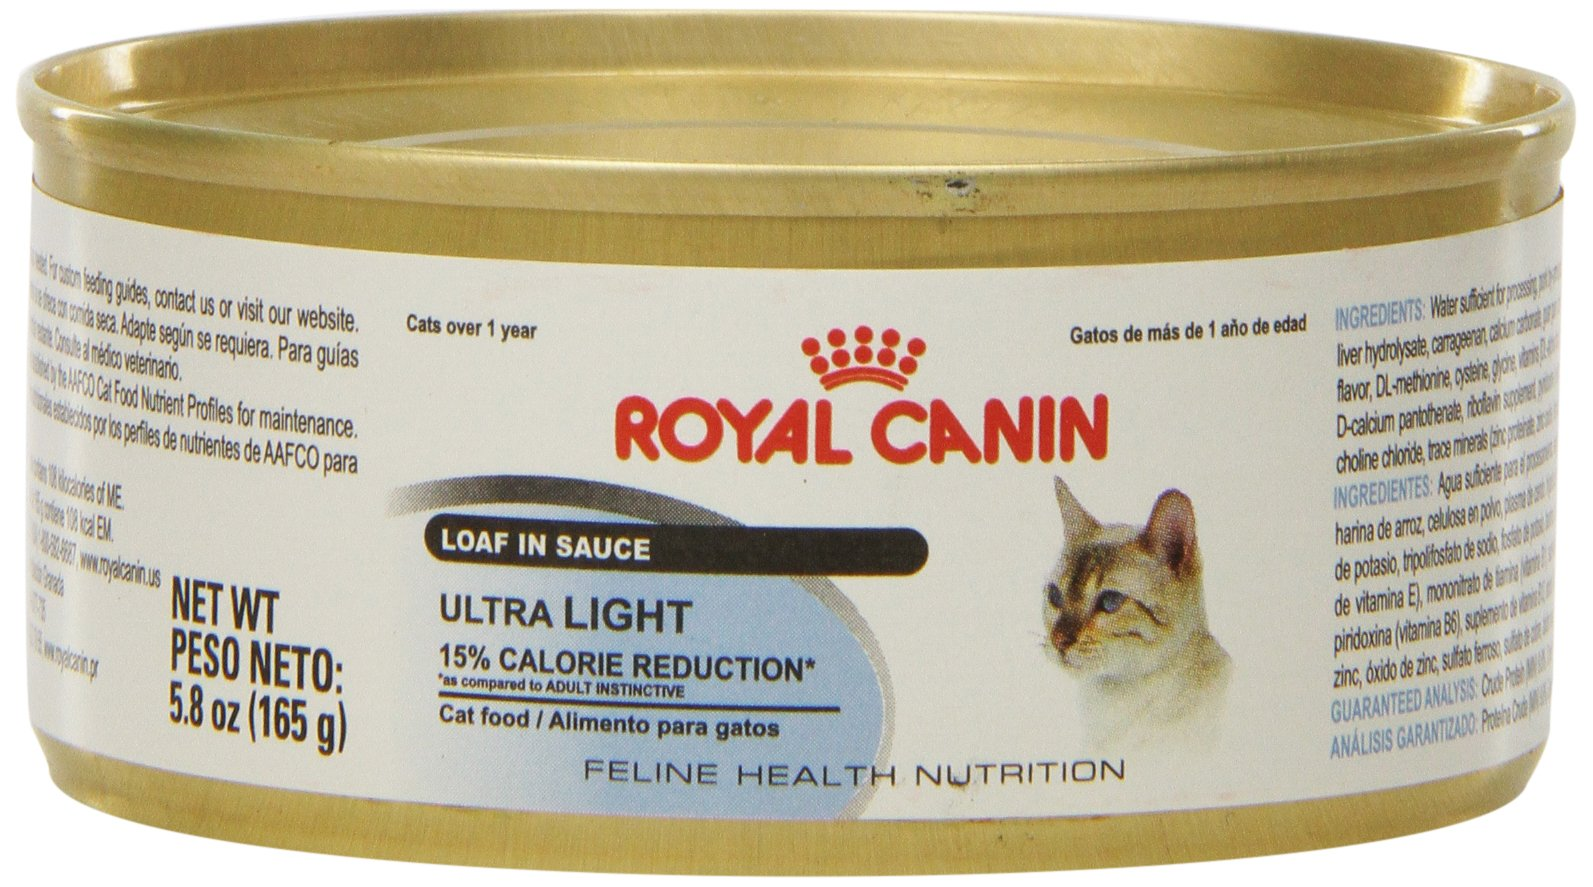 Royal Canin Feline Health Nutrition Ultralight Loaf in Sauce Canned Cat Food (24 Pack), 5.8 oz/One Size